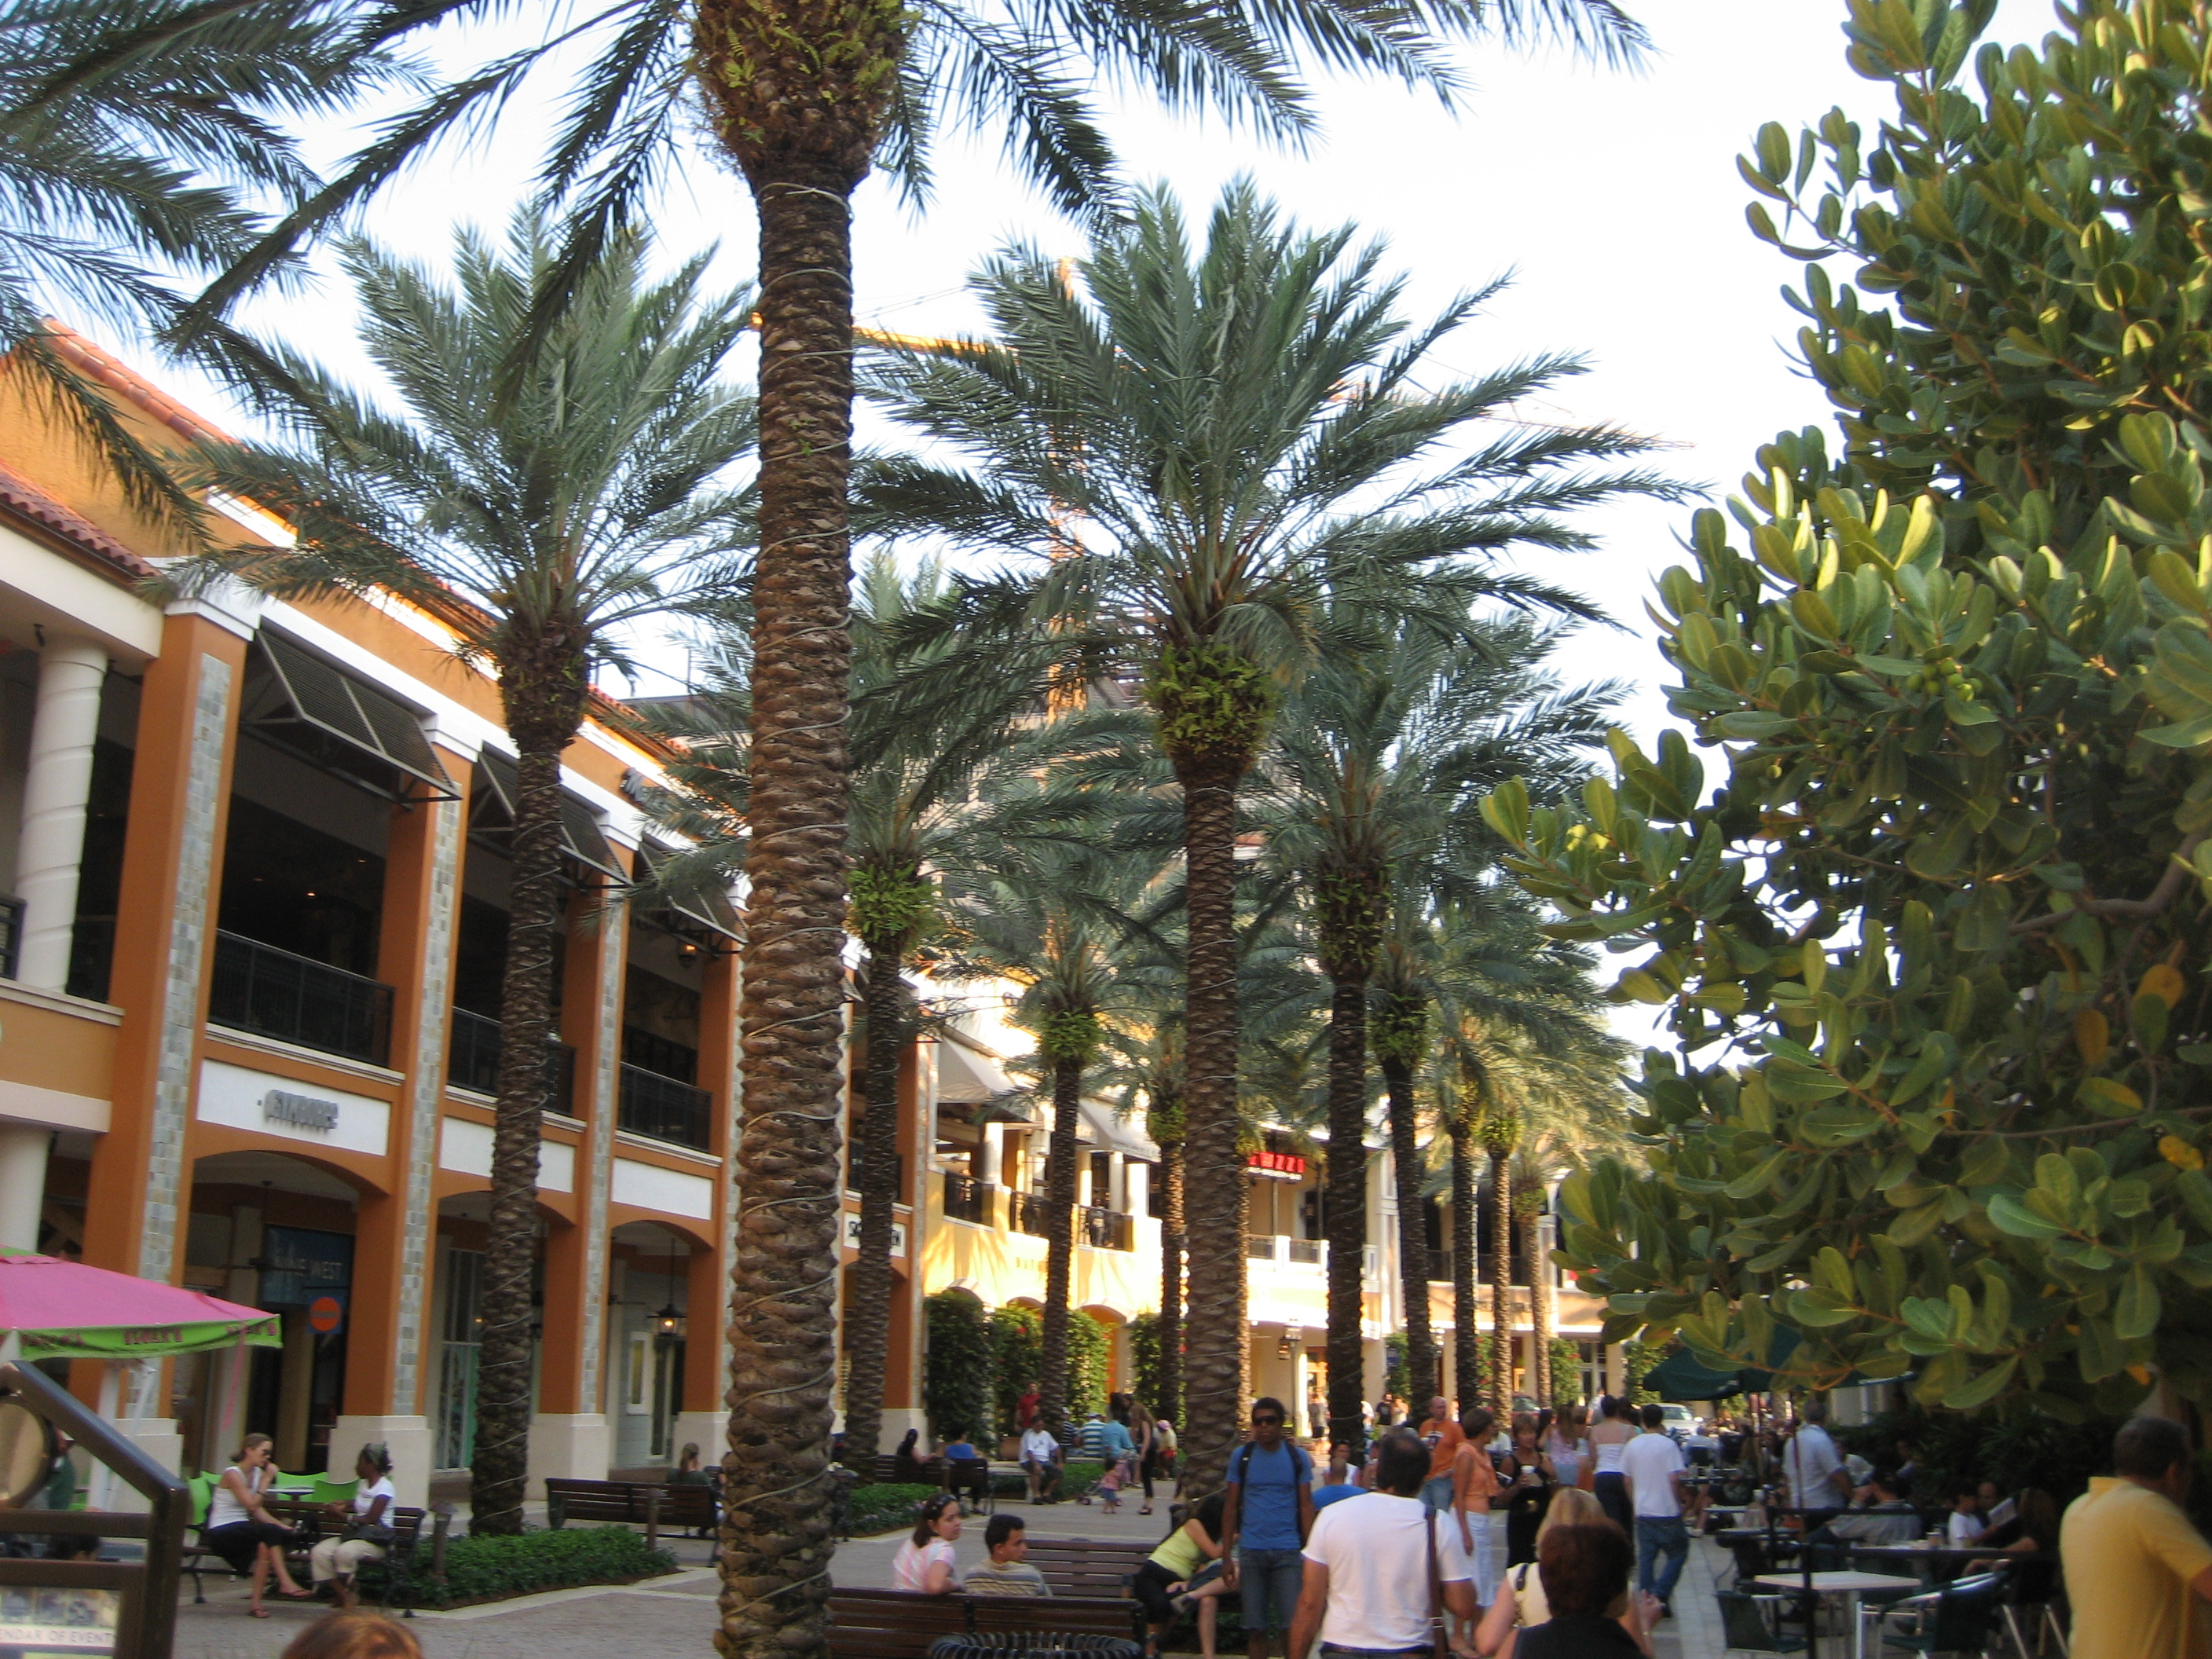 Pictures Cityplace West Palm Beach Florida